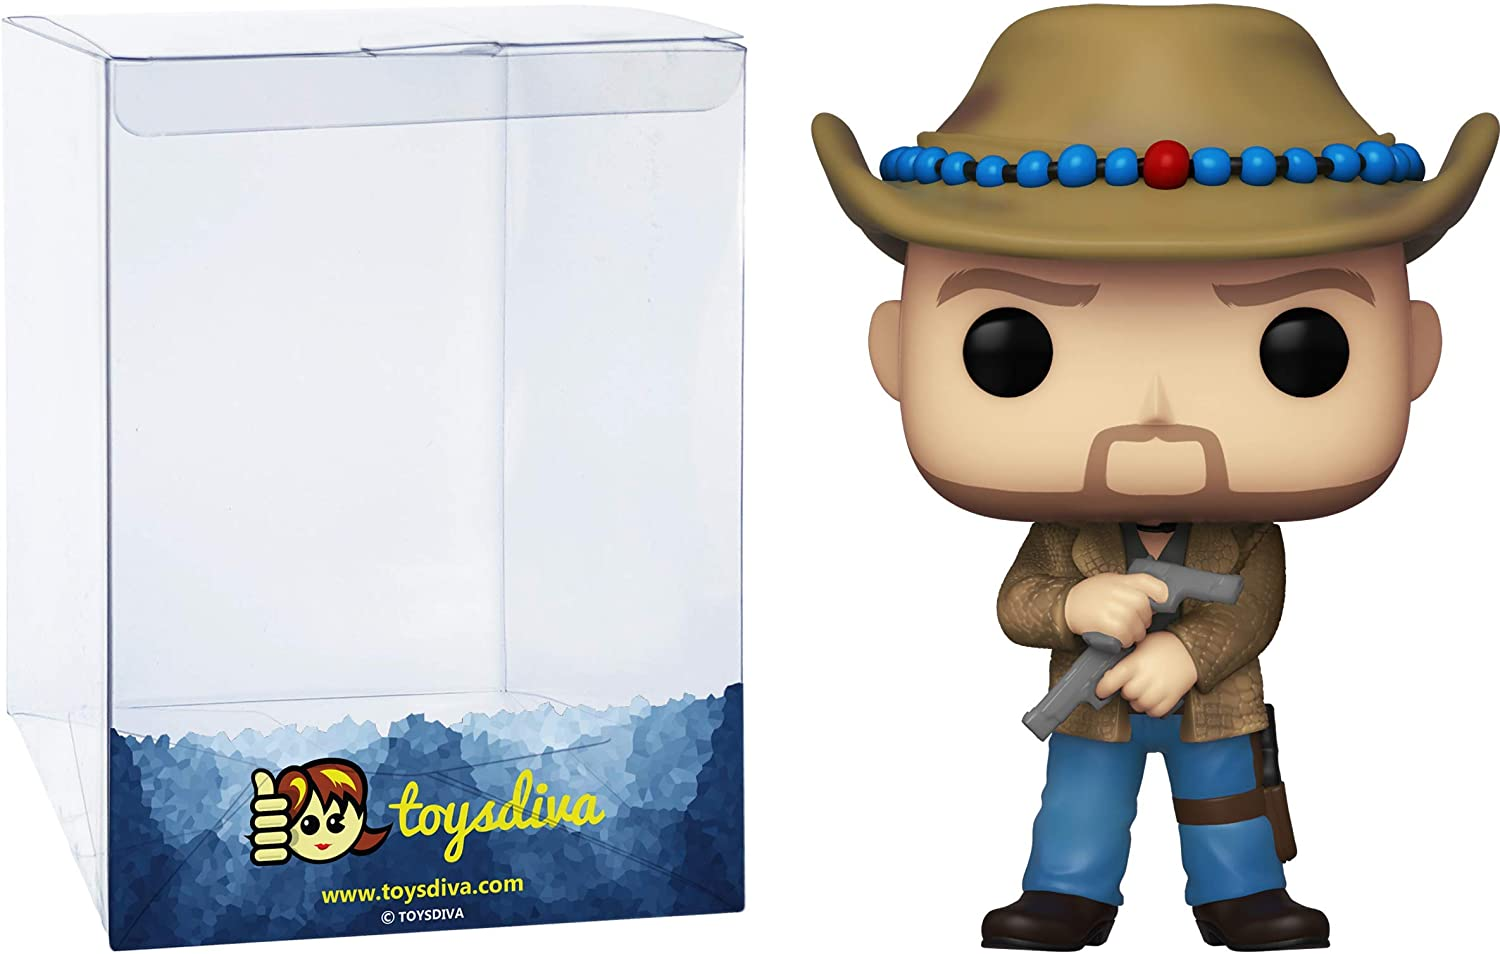 Tallahassee: Funko Pop! Movies Vinyl Figure Bundle with 1 Compatible 'ToysDiva' Graphic Protector (997 - 49100 - B)